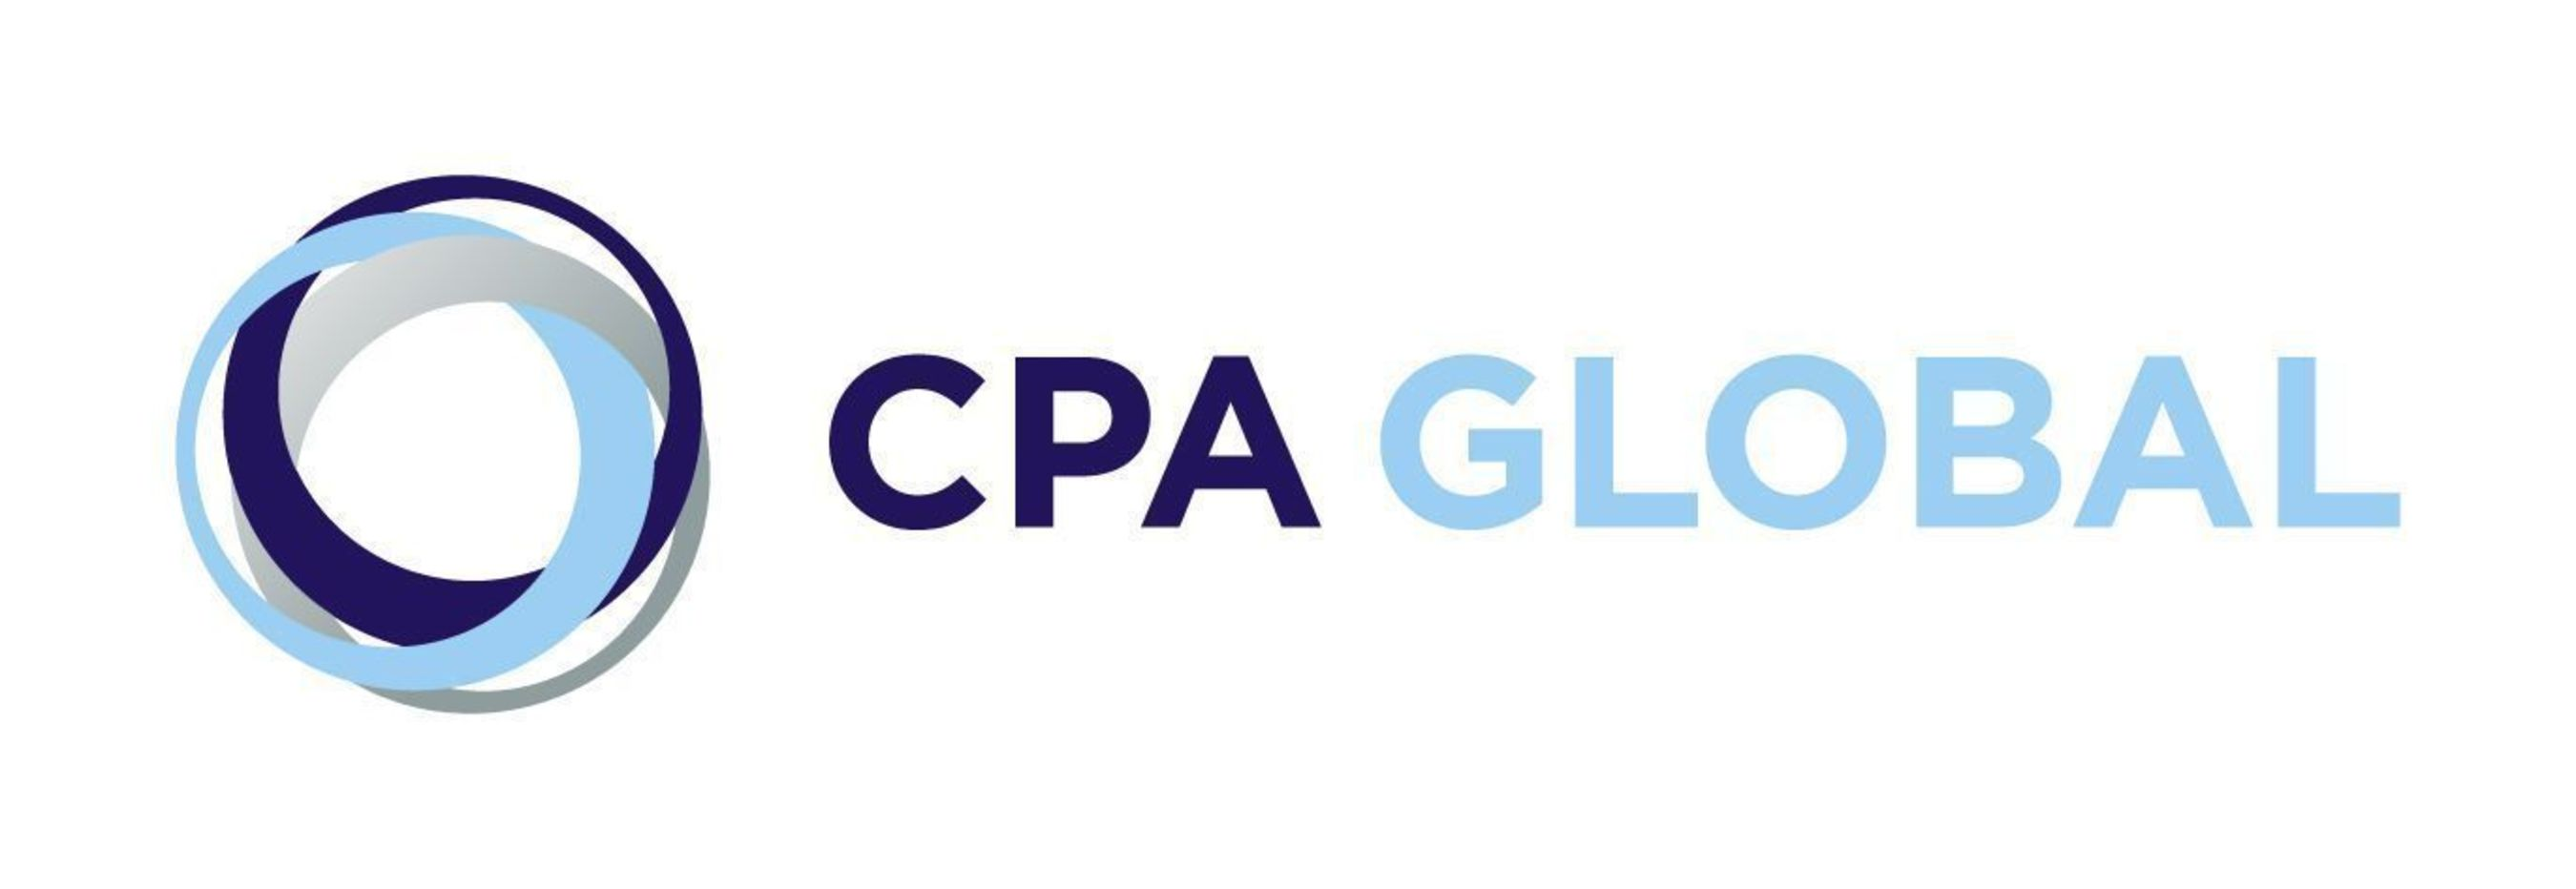 CPA Global Presents Major New IP Forum in Washington DC